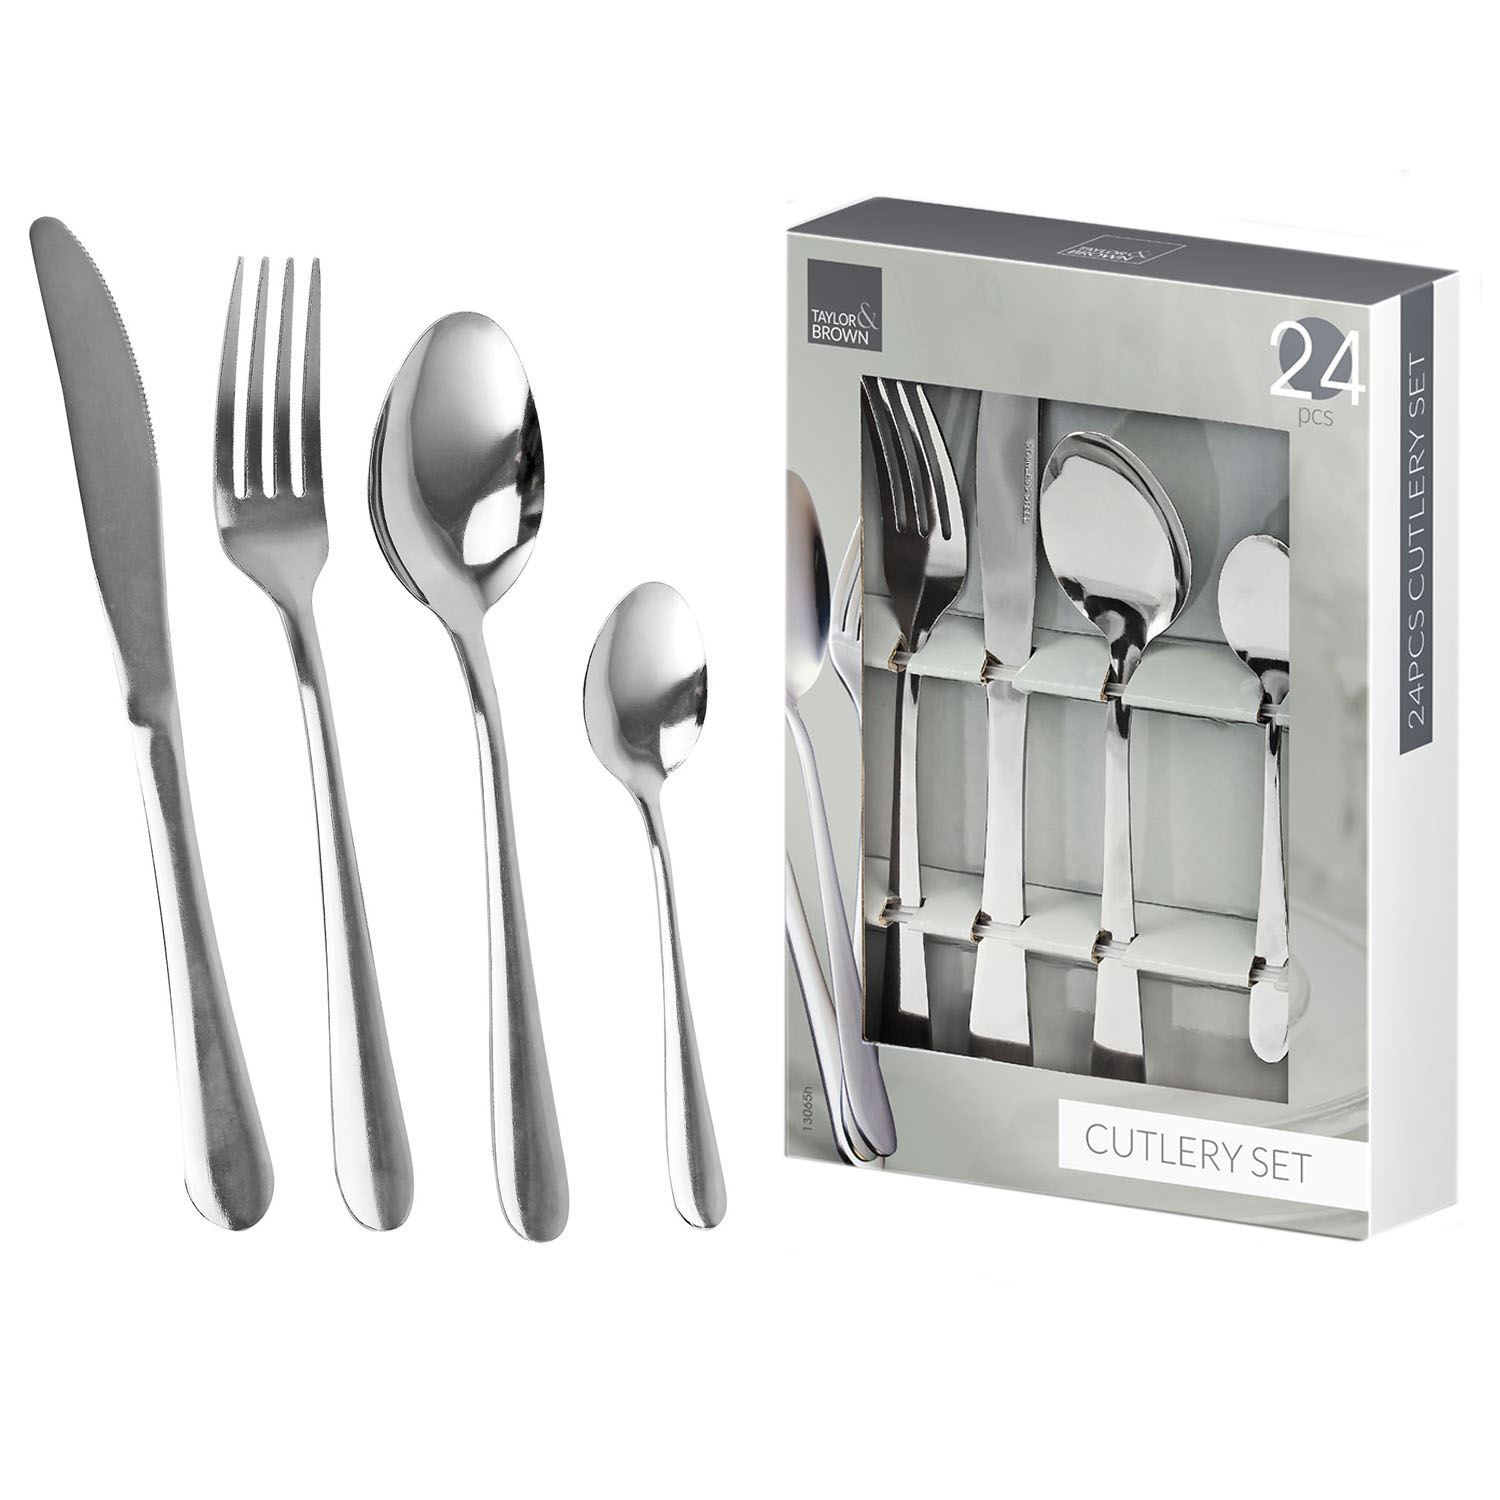 4-24 PCS Stainless Steel Quality Kitchen Cutlery Set Dining Forks Knives Spoons